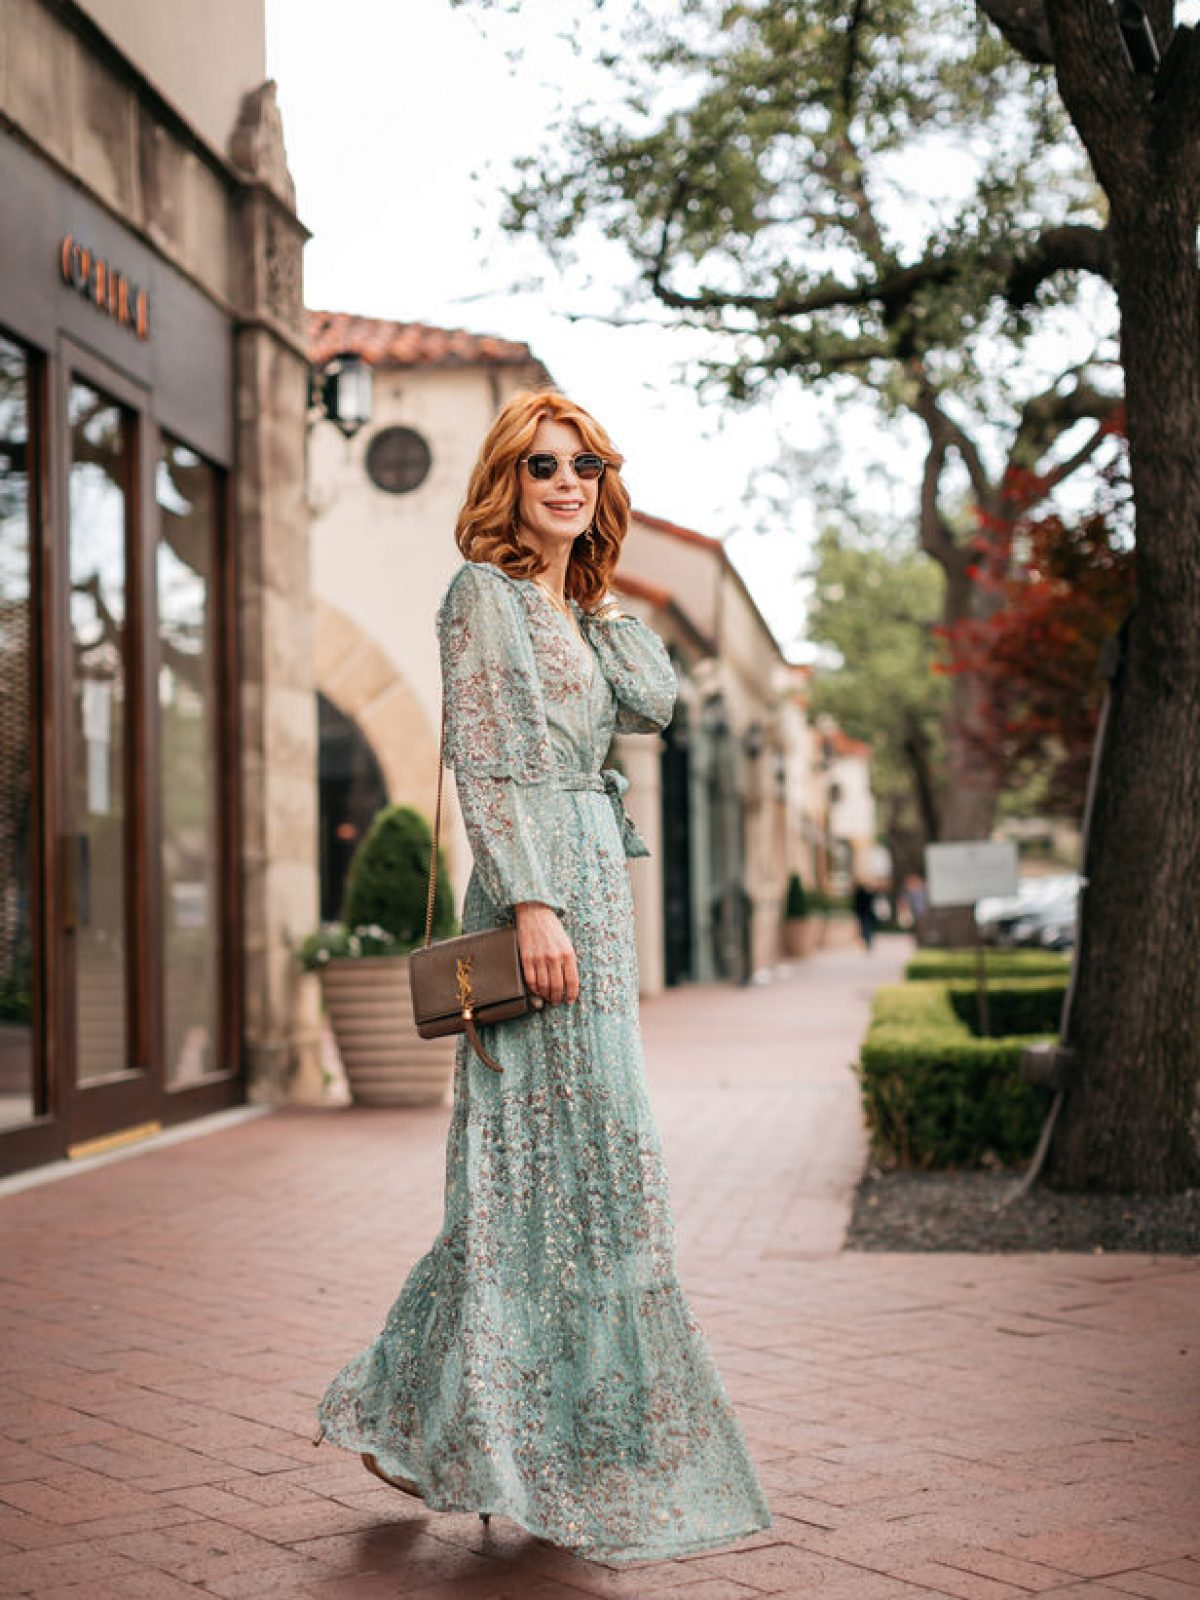 Dallas blogger in mint green maxi dress with tie waist for wedding season